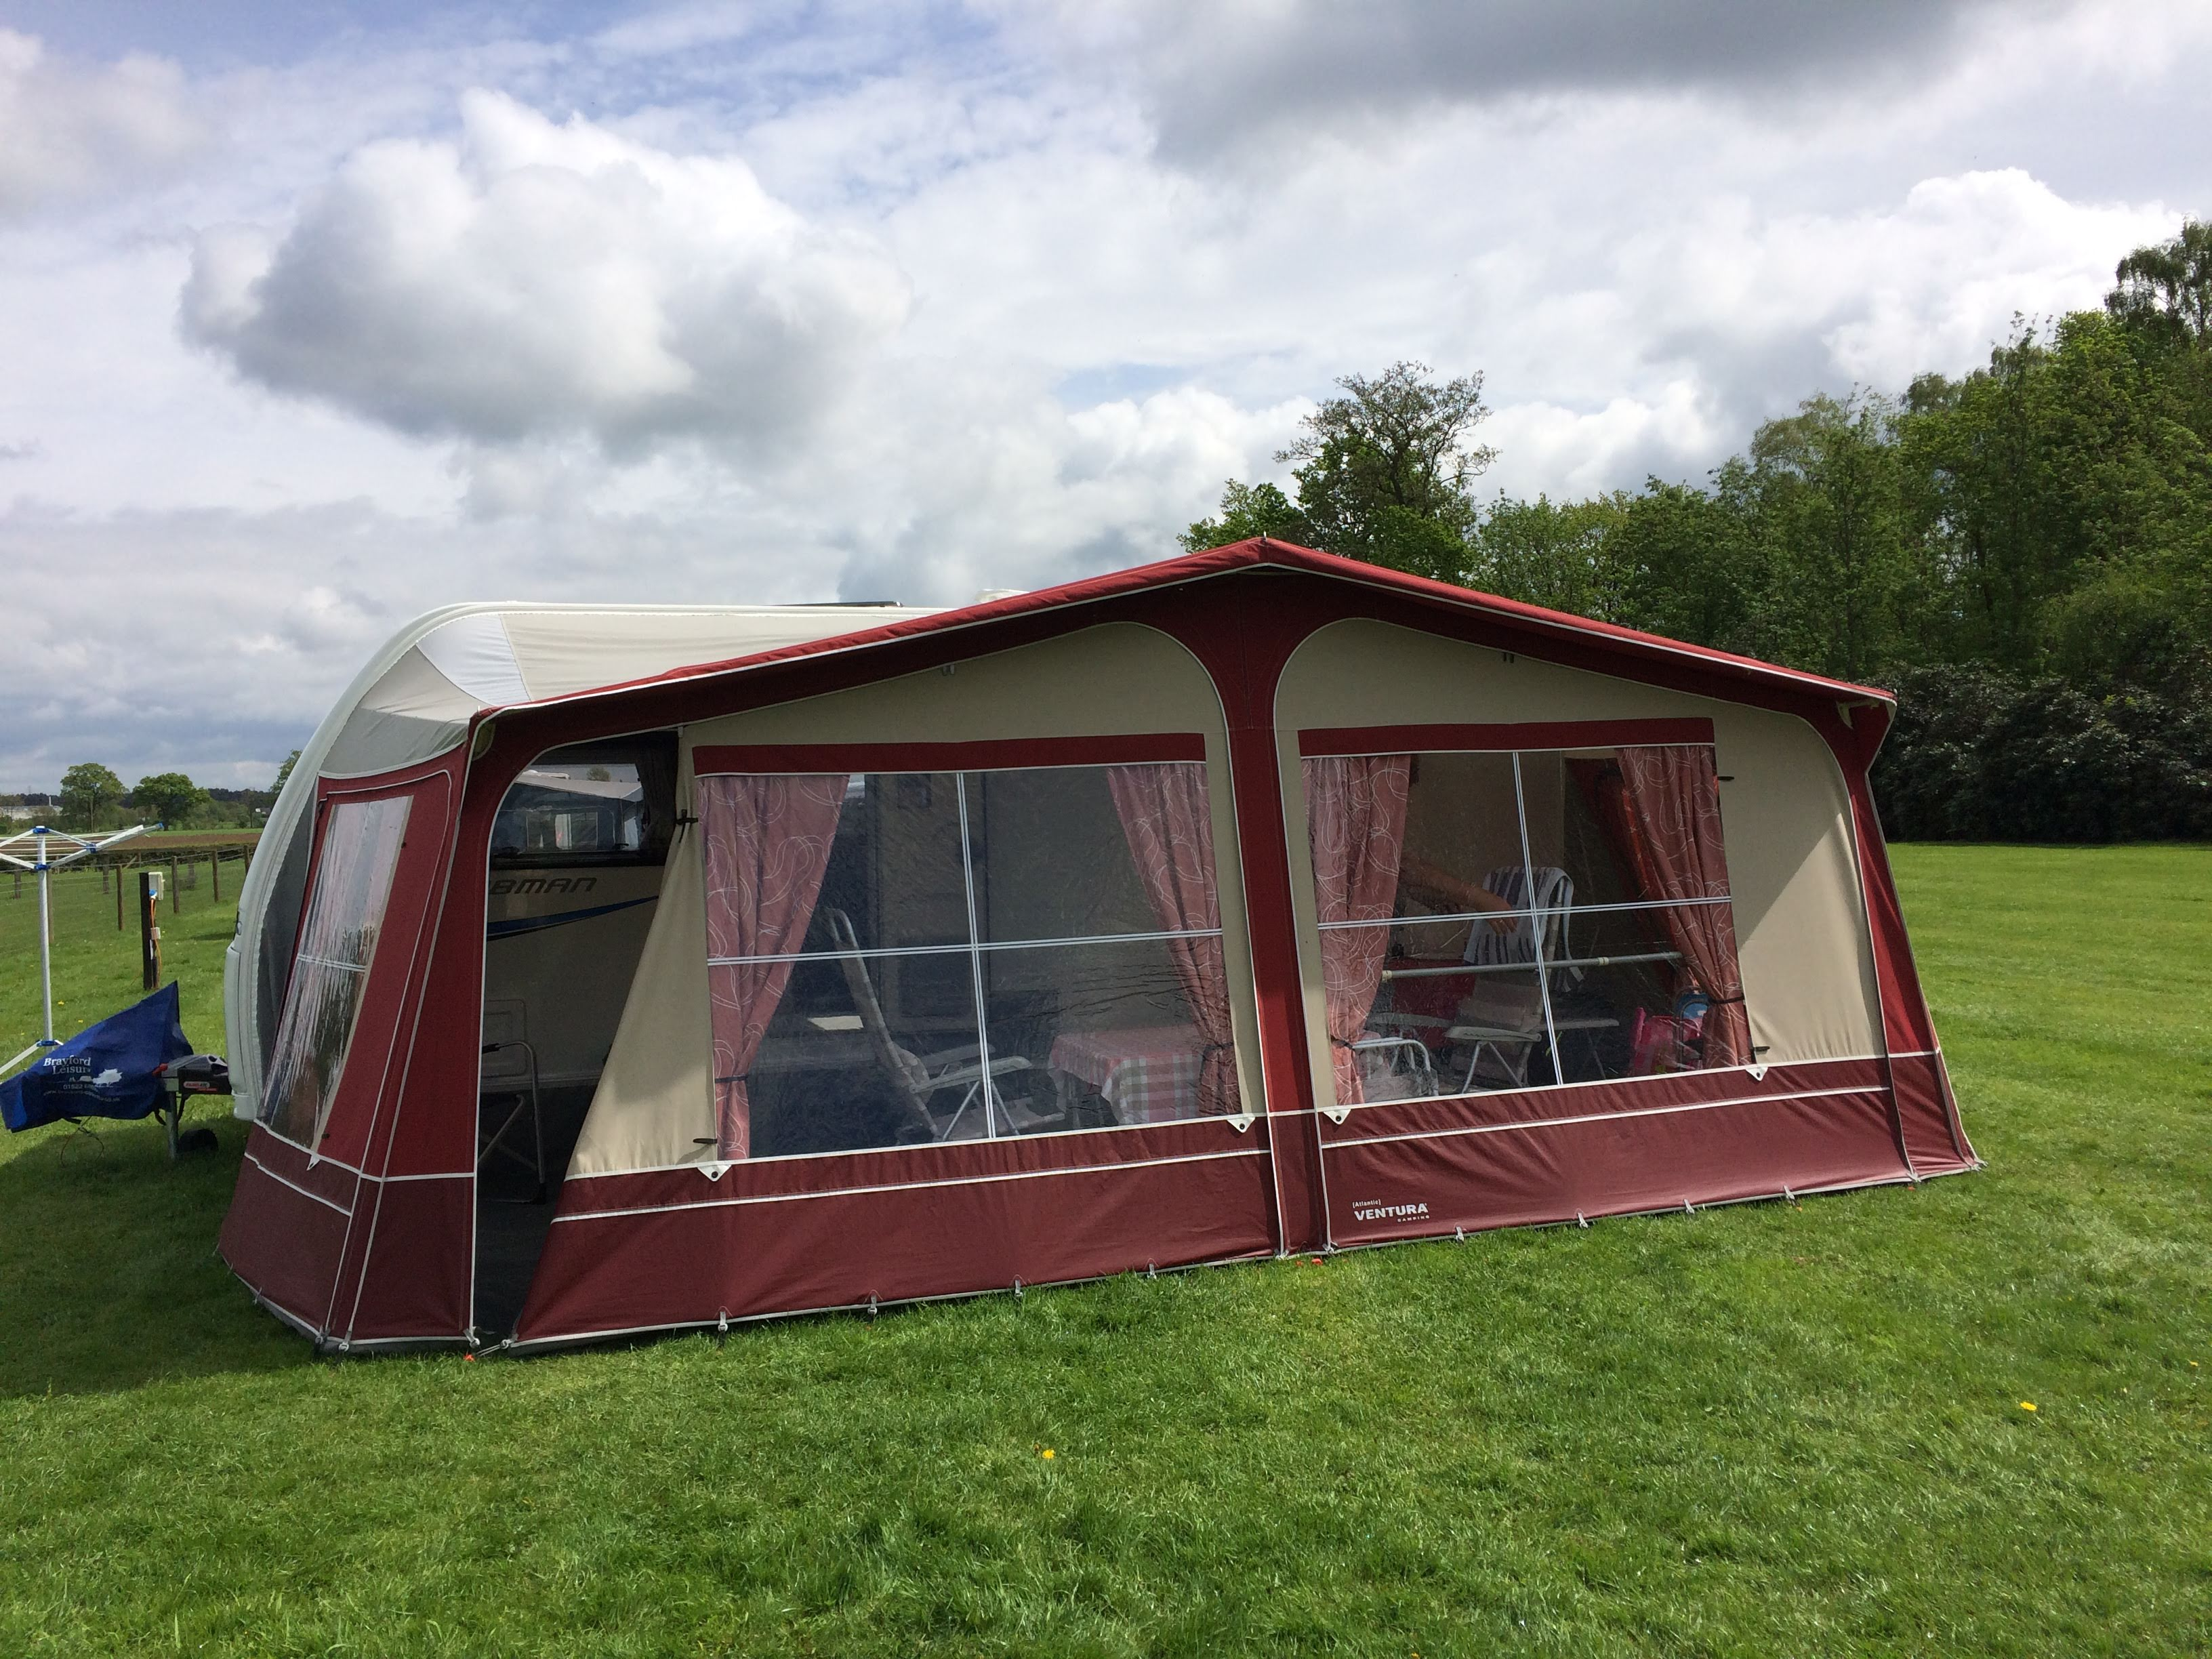 Caravan Awning Extensions Amp Reductions Outdoor Sewing